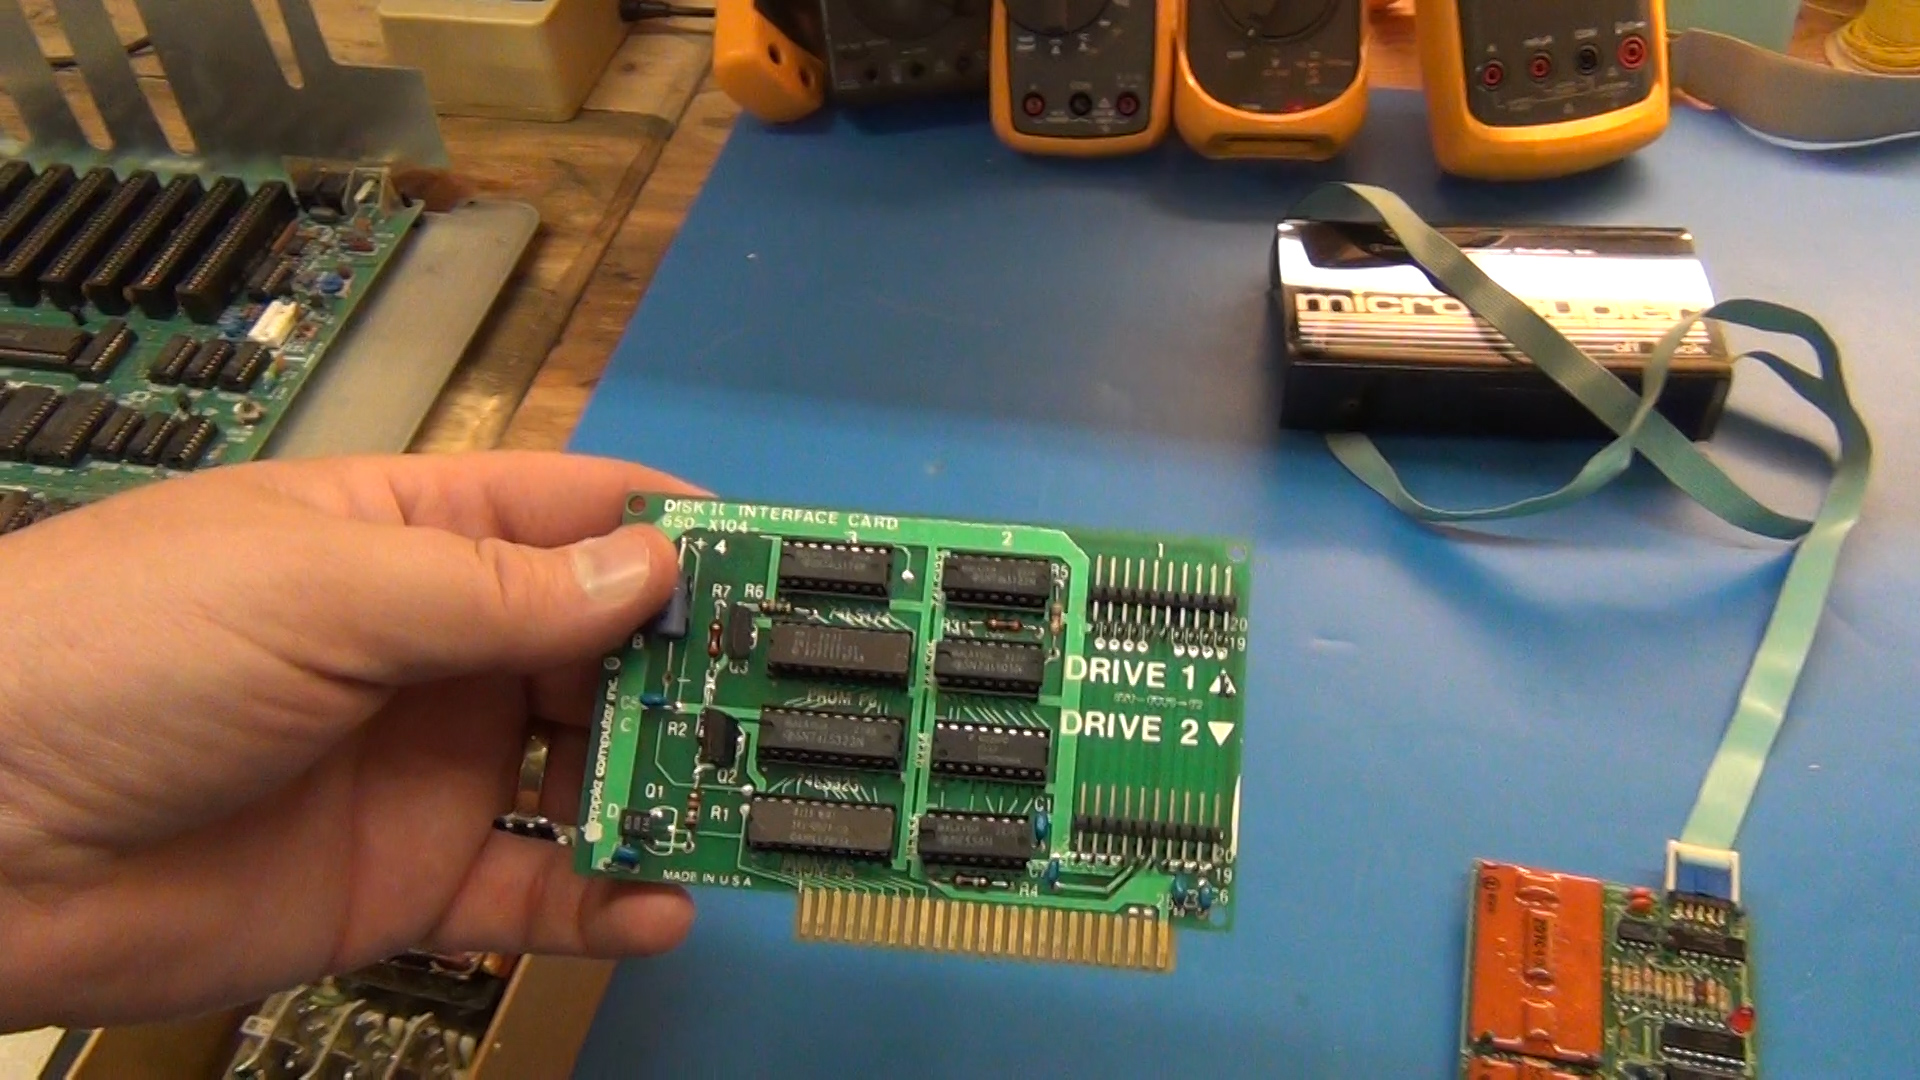 ToddFun com » Blog Archive » Apple II Plus from 1982 teardown